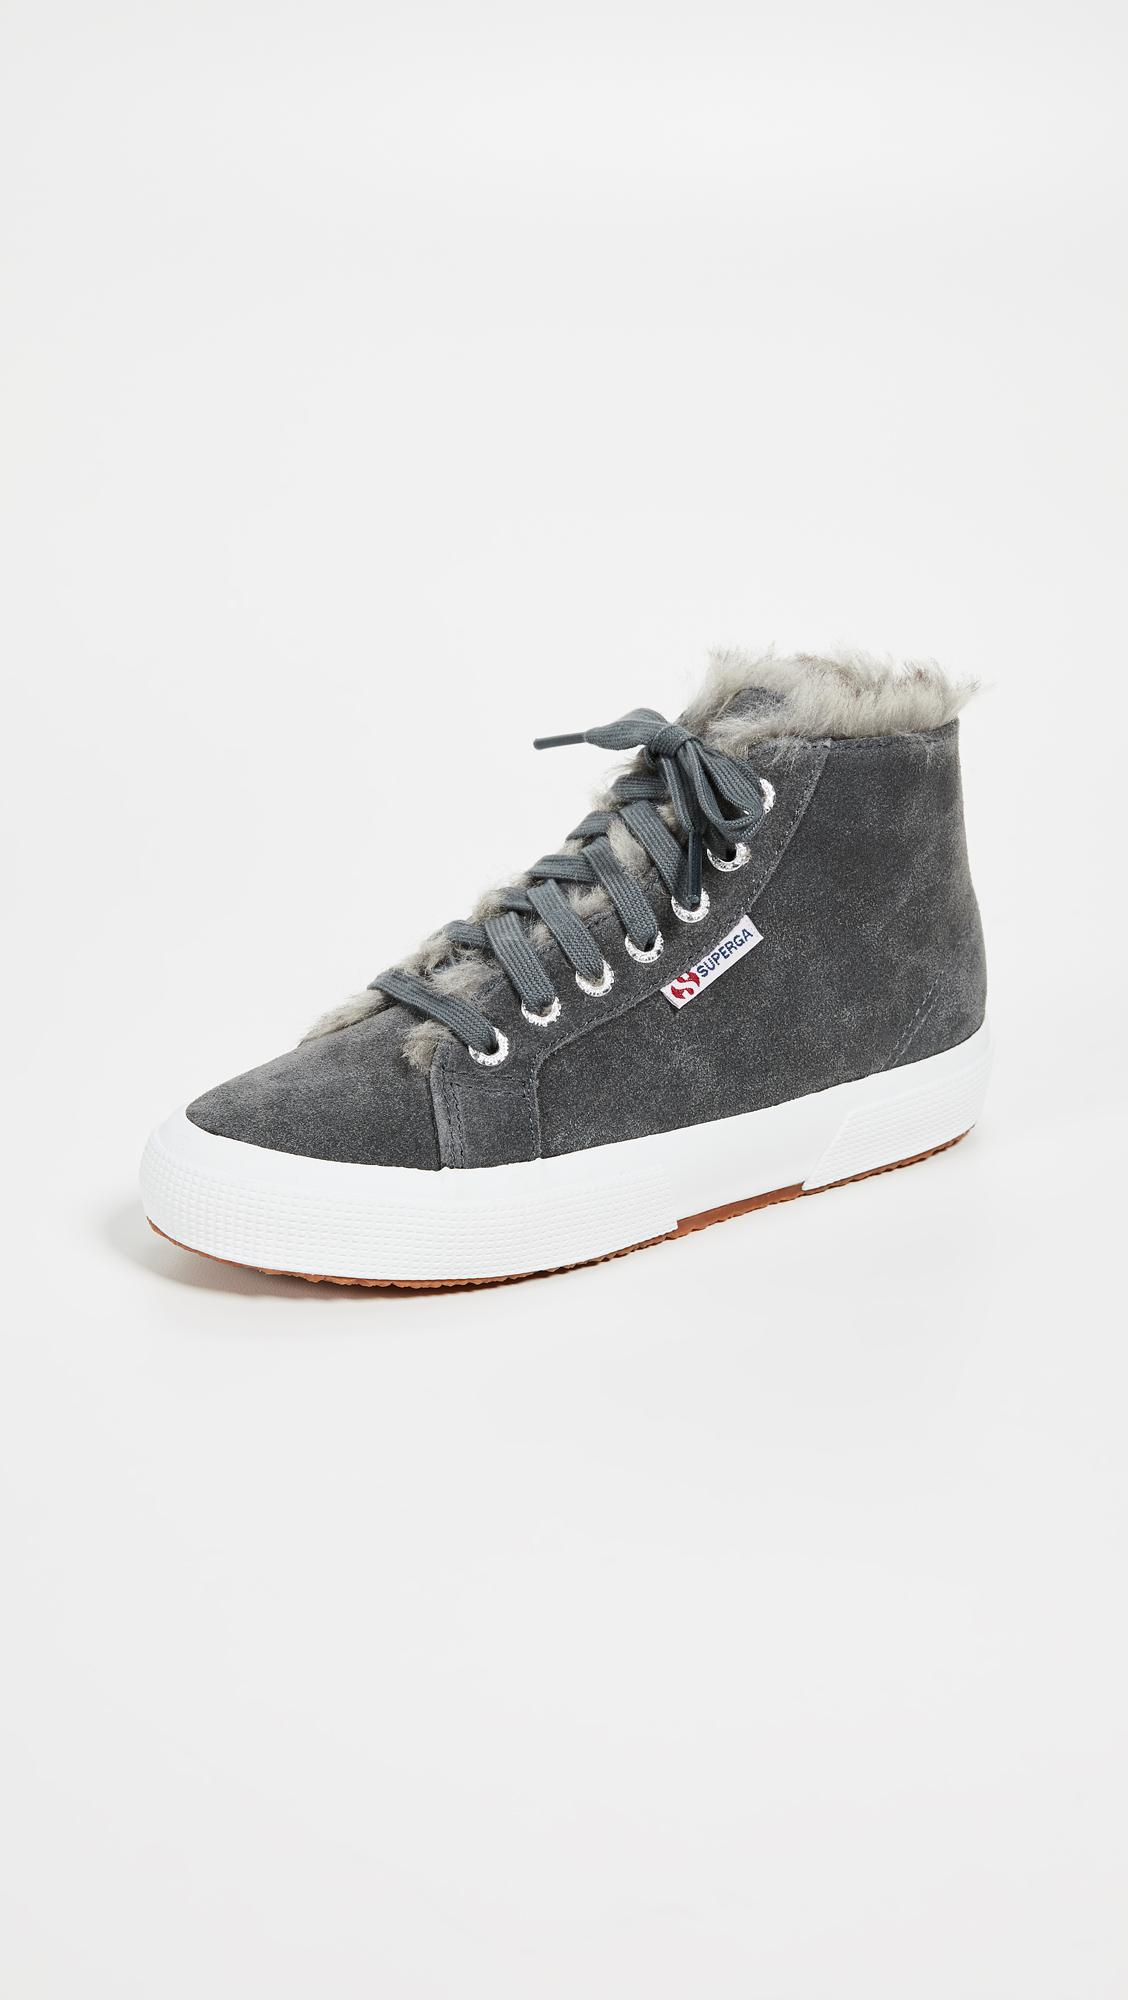 40f71d565dbf Superga 2795 Faux Fur Lined Sneakers in Gray - Lyst